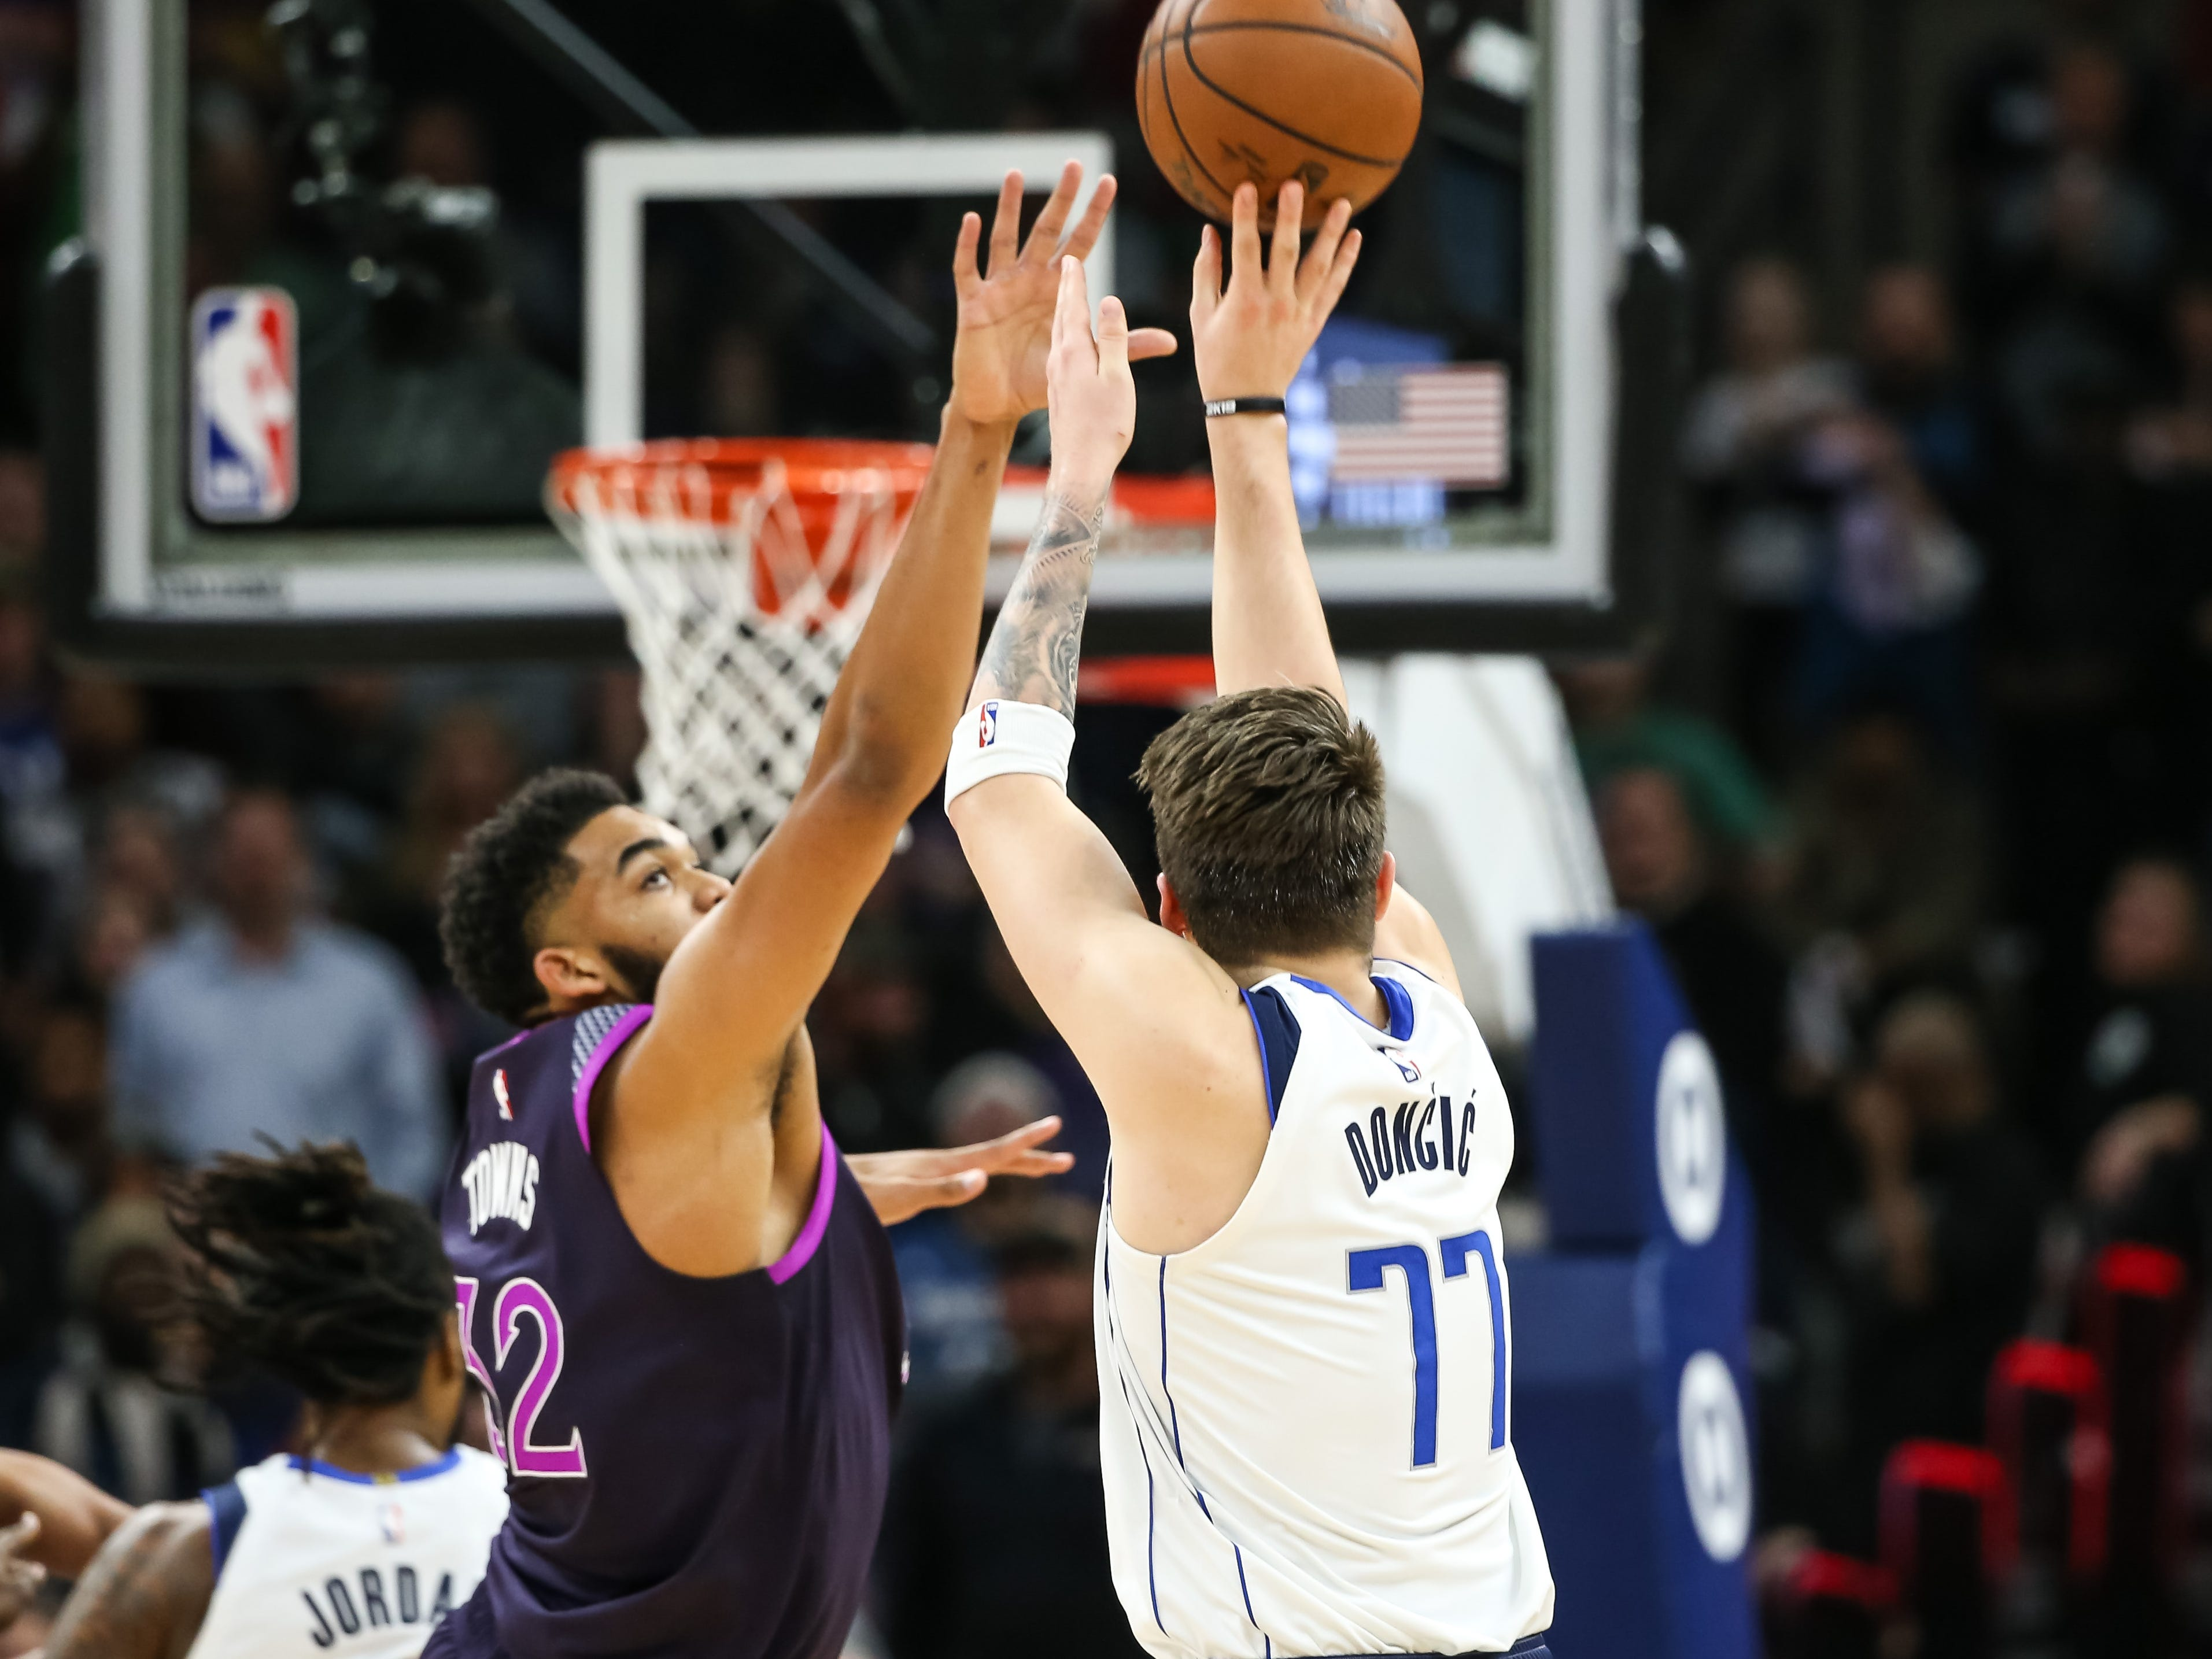 Jan. 11: Mavericks guard Luka Doncic (77) rises and sinks the go-ahead 3-pointer over Timberwolves defender Karl-Anthony Towns (32) in the closing seconds in Minneapolis.